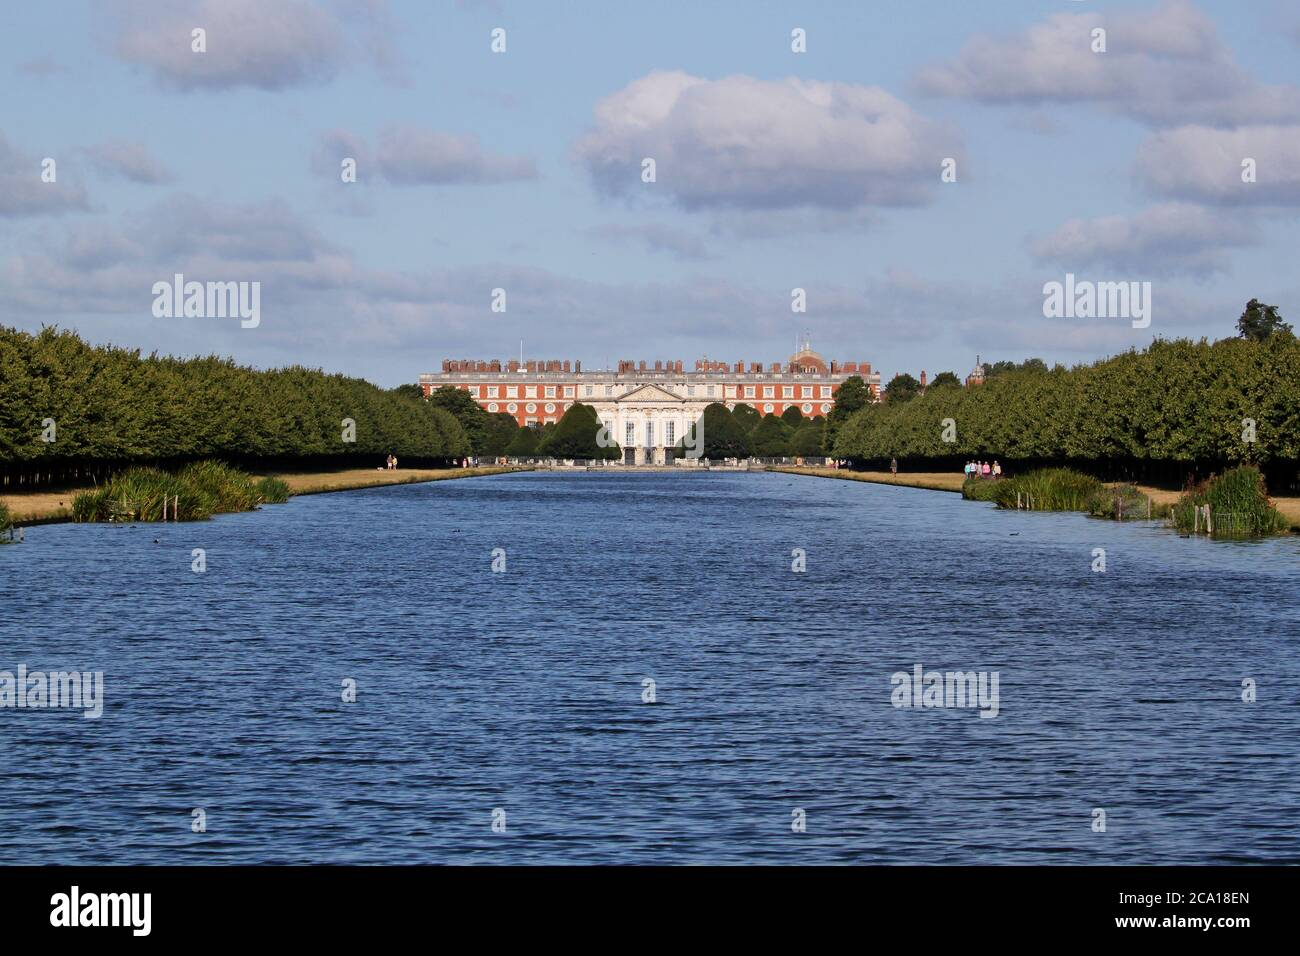 Hampton Court Palace (East Front) from Long Water, Home Park, Hampton Court, East Molesey, Surrey, England, Great Britain, United Kingdom, UK, Europe Stock Photo